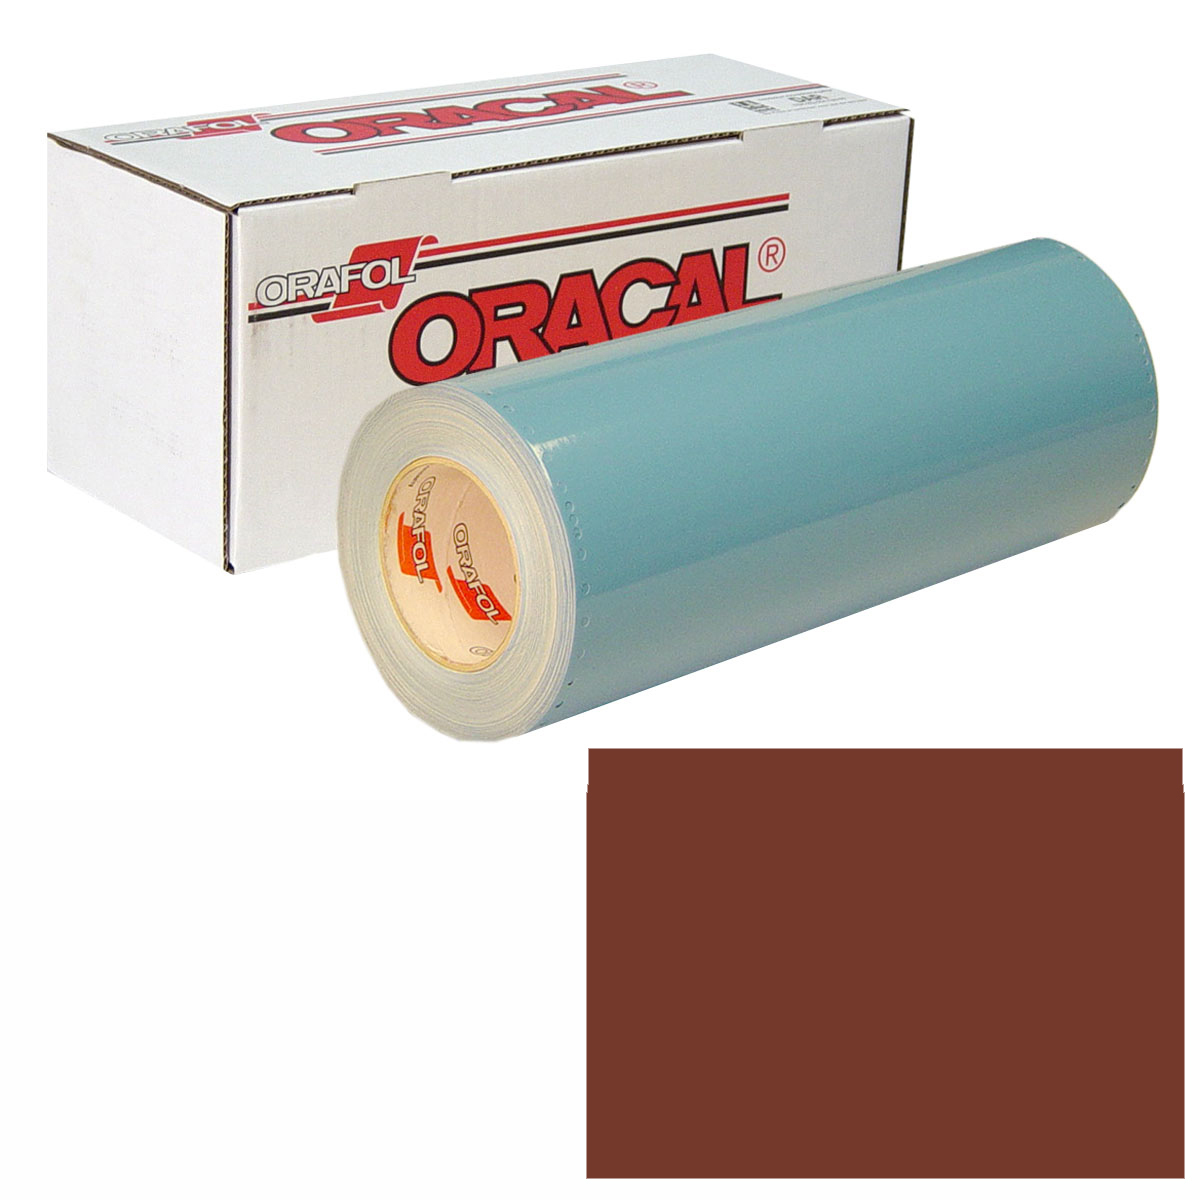 ORACAL 751 15In X 50Yd 079 Red Brown